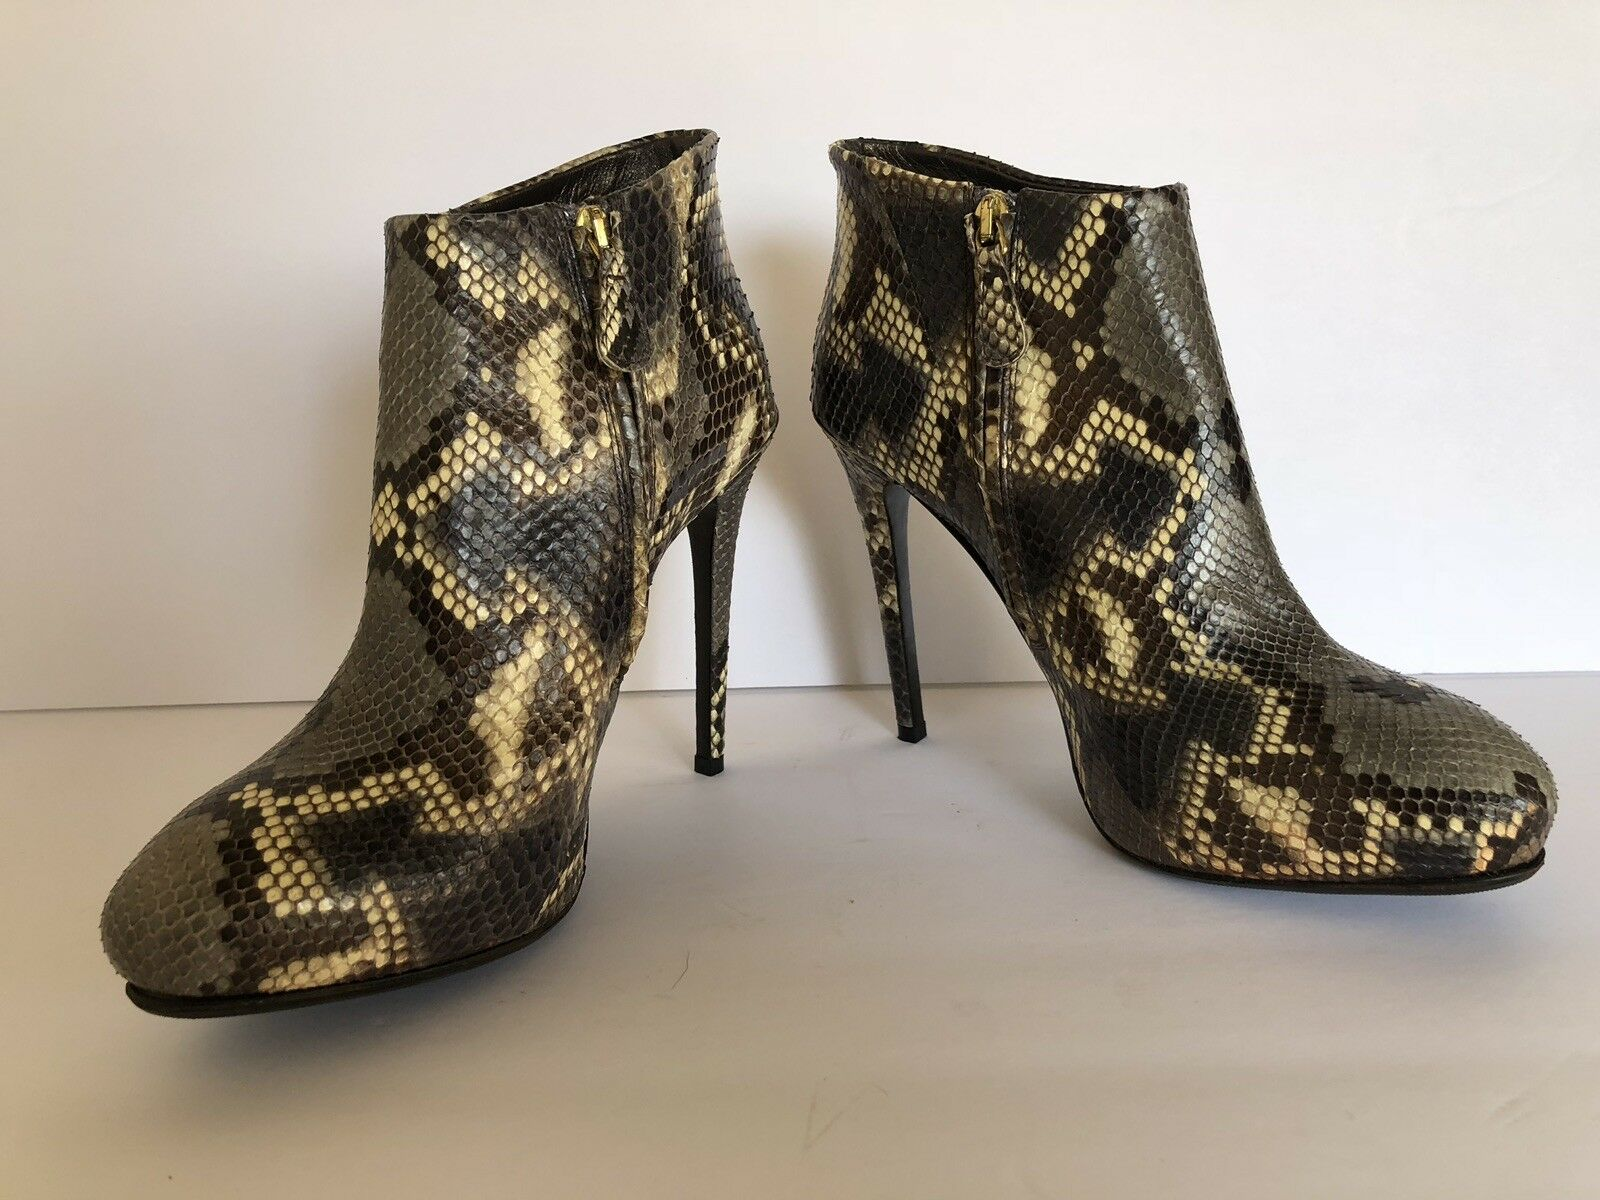 ROBERTO CAVALLI  2005 PYTHON LEATHER ANKLE ANKLE ANKLE  BOOTS WITH gold LOGO  38.5 - 8.5 da94ea